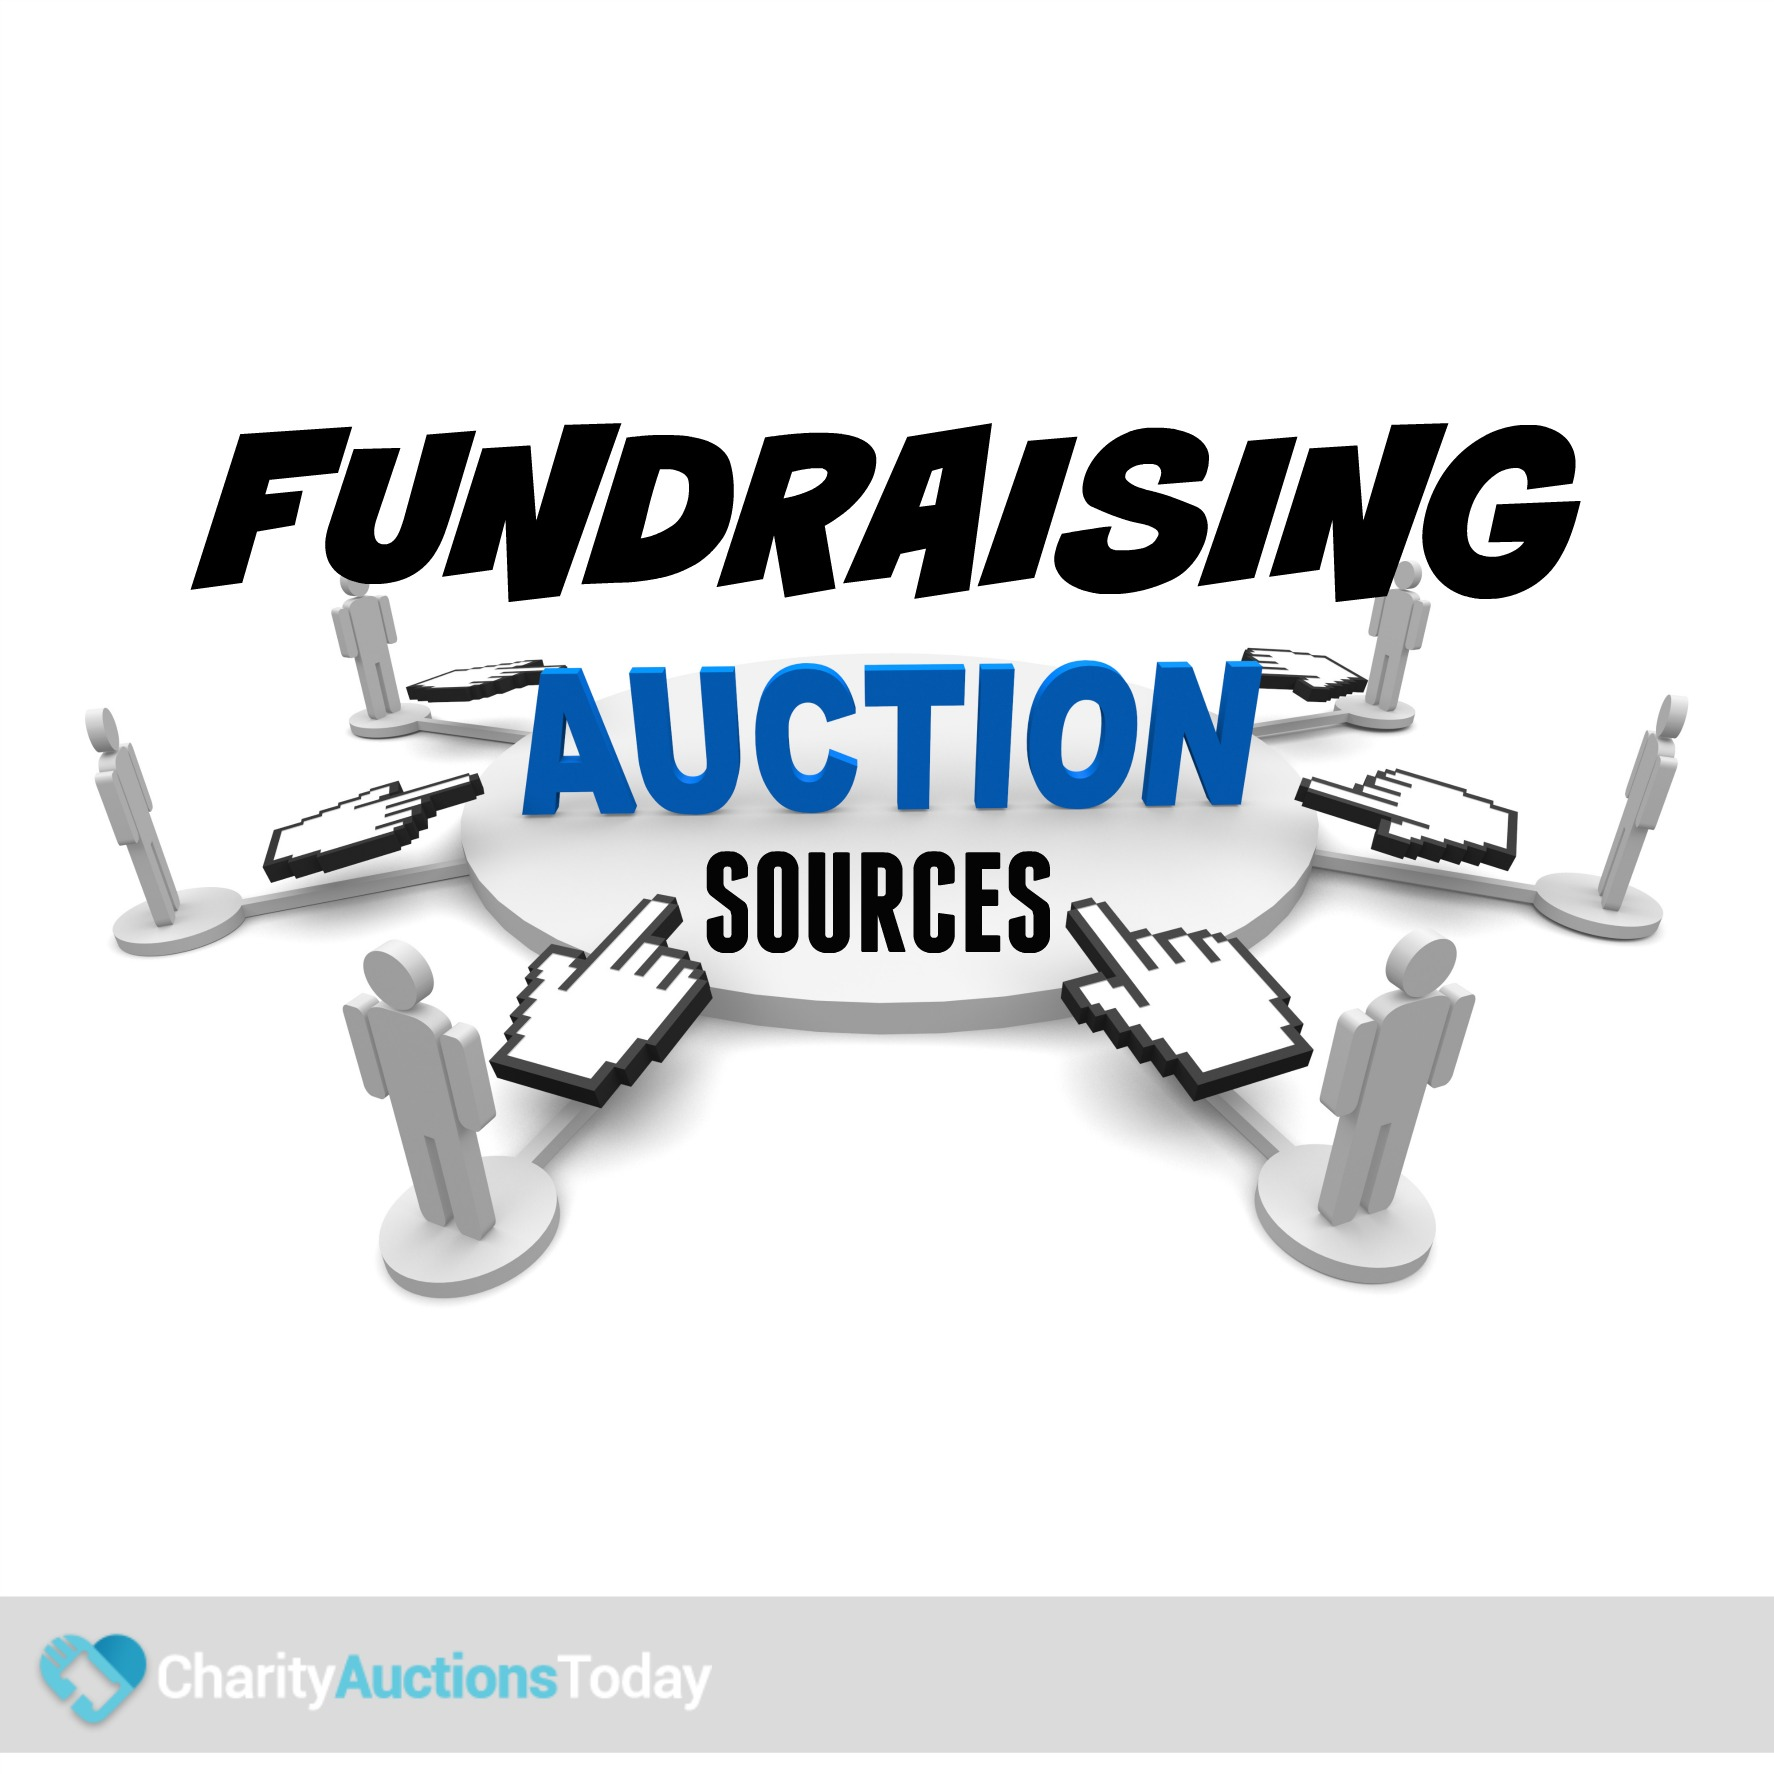 Fundraising Auction Sources | Charity Auctions Today